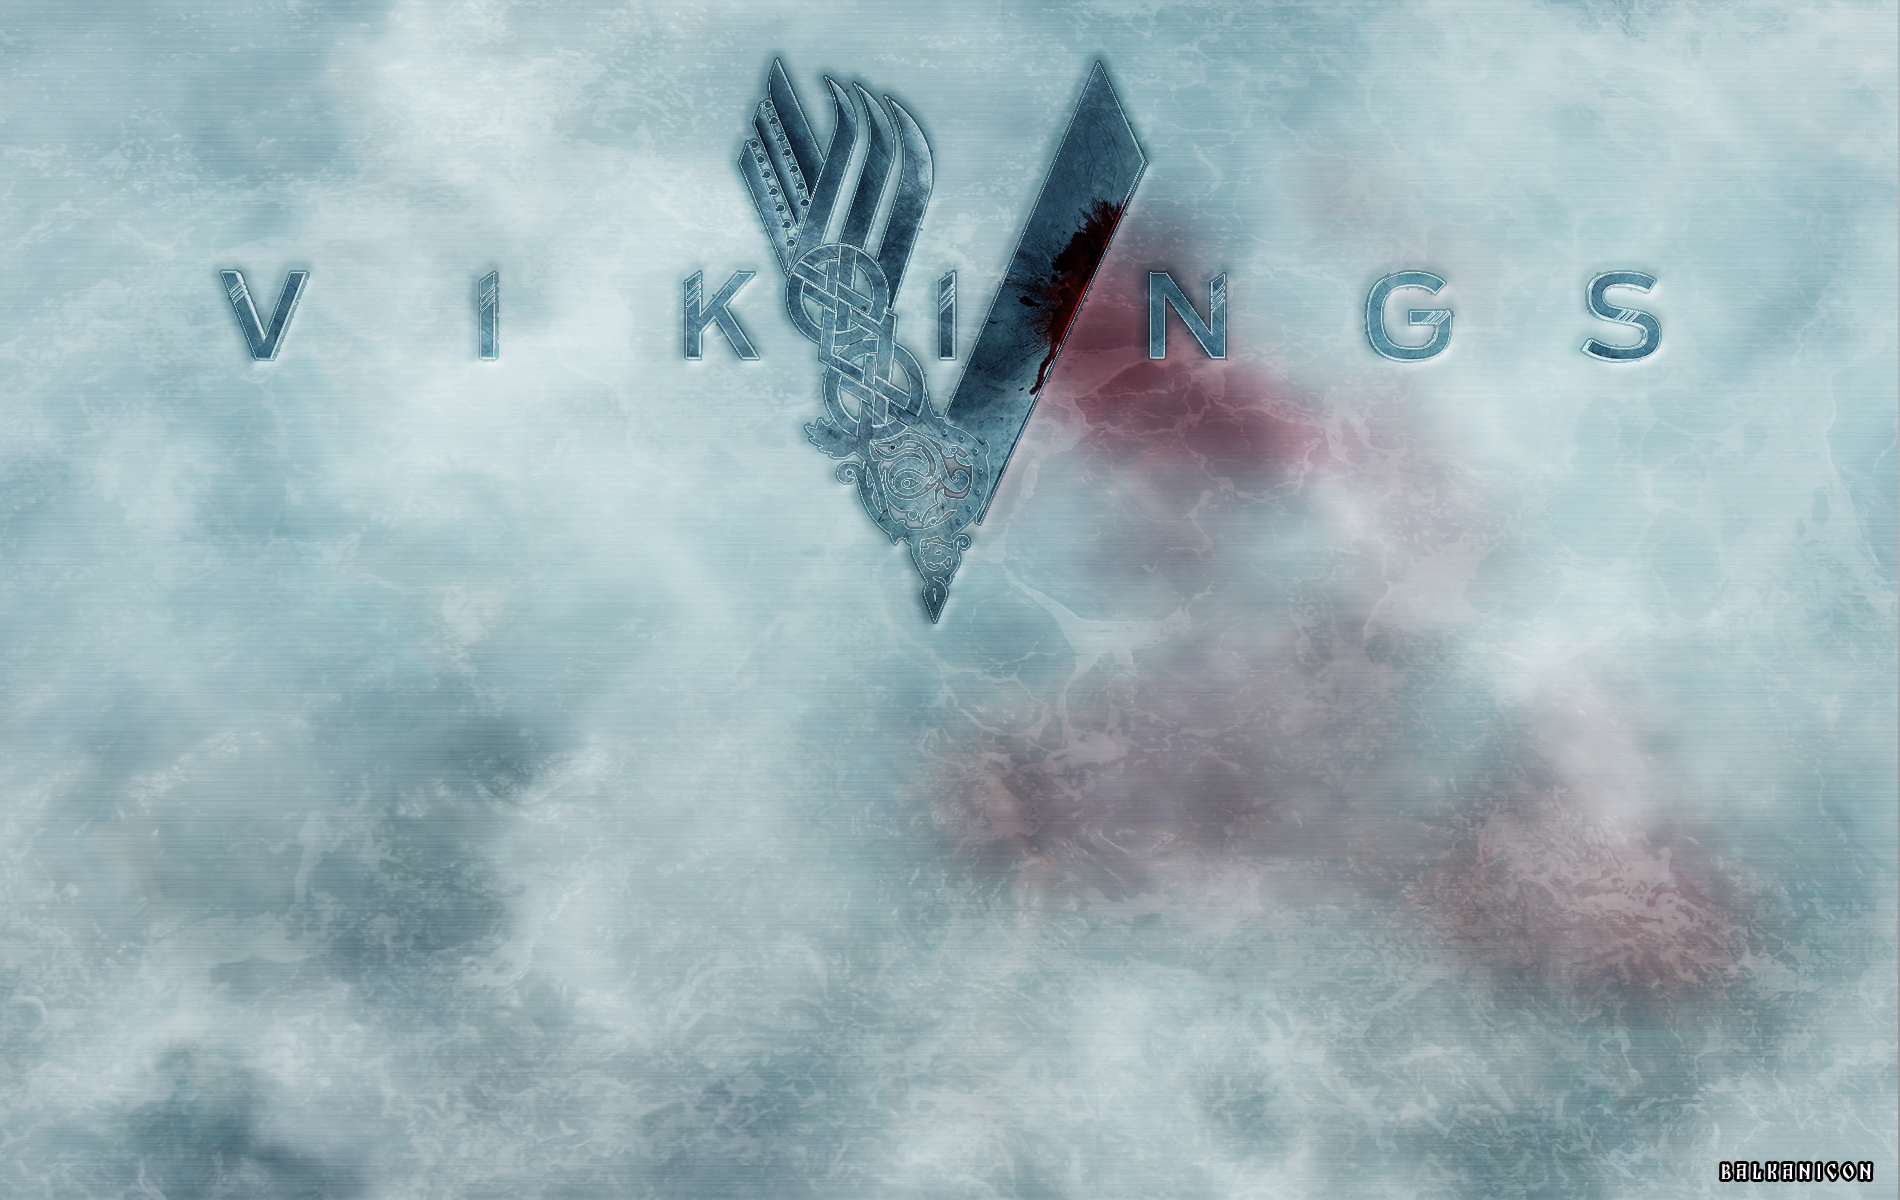 Vikings [TV series] wallpaper by Balkanicon on DeviantArt